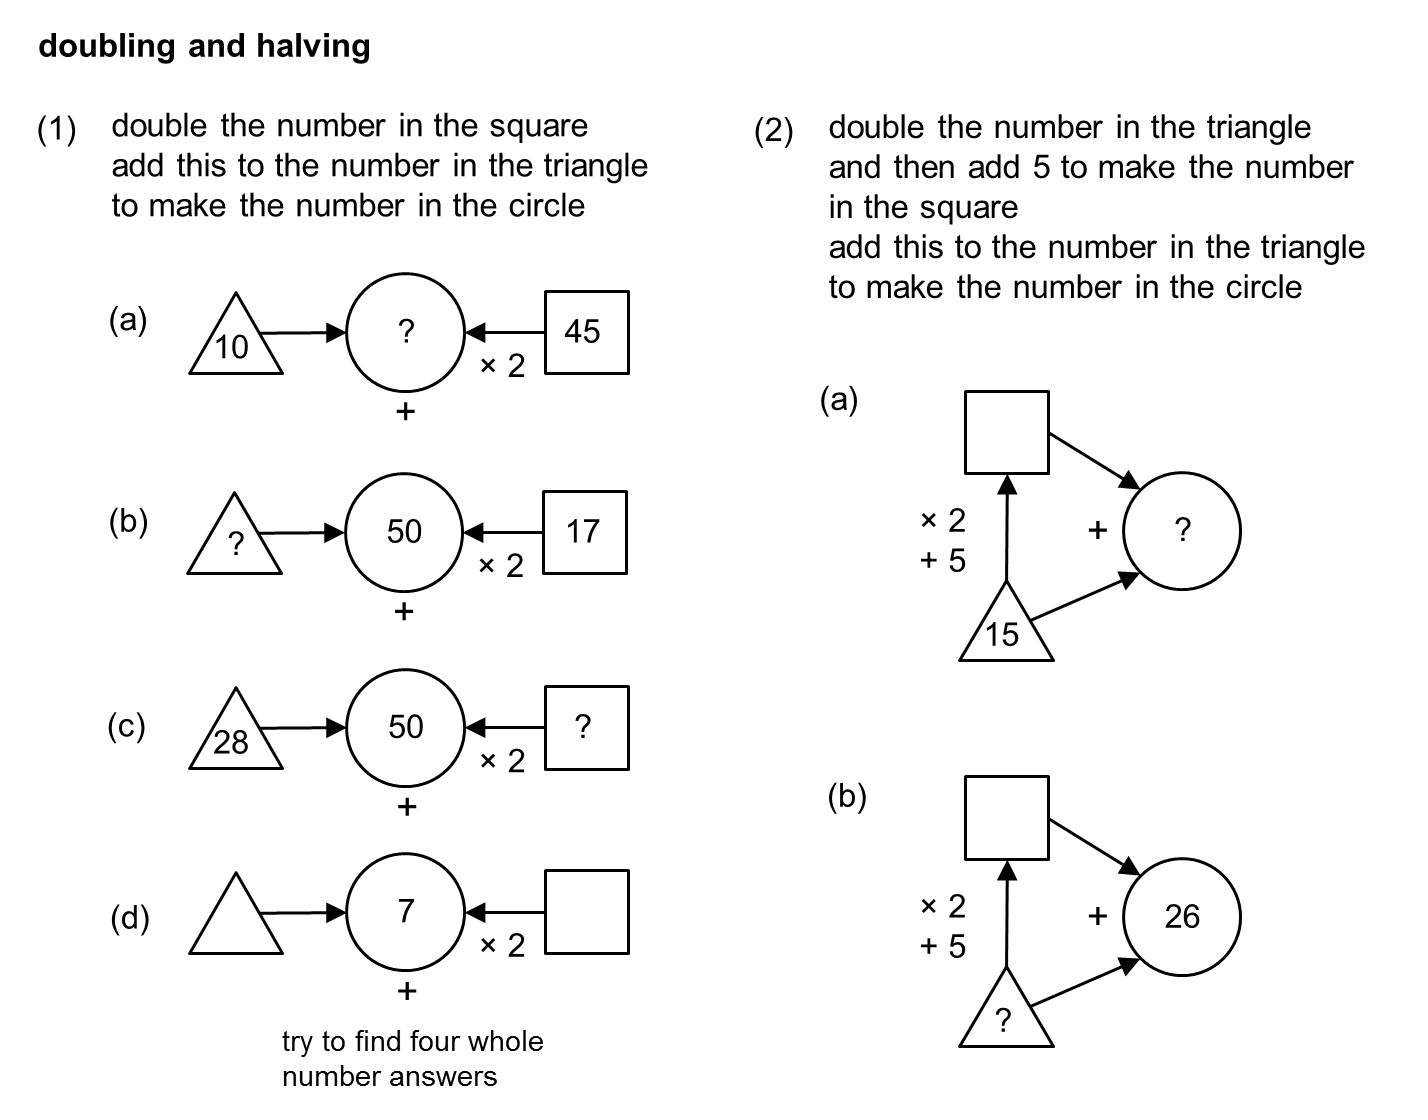 worksheet Doubling And Halving Decimals Worksheets Year 5 median don steward mathematics teaching doubling and halving